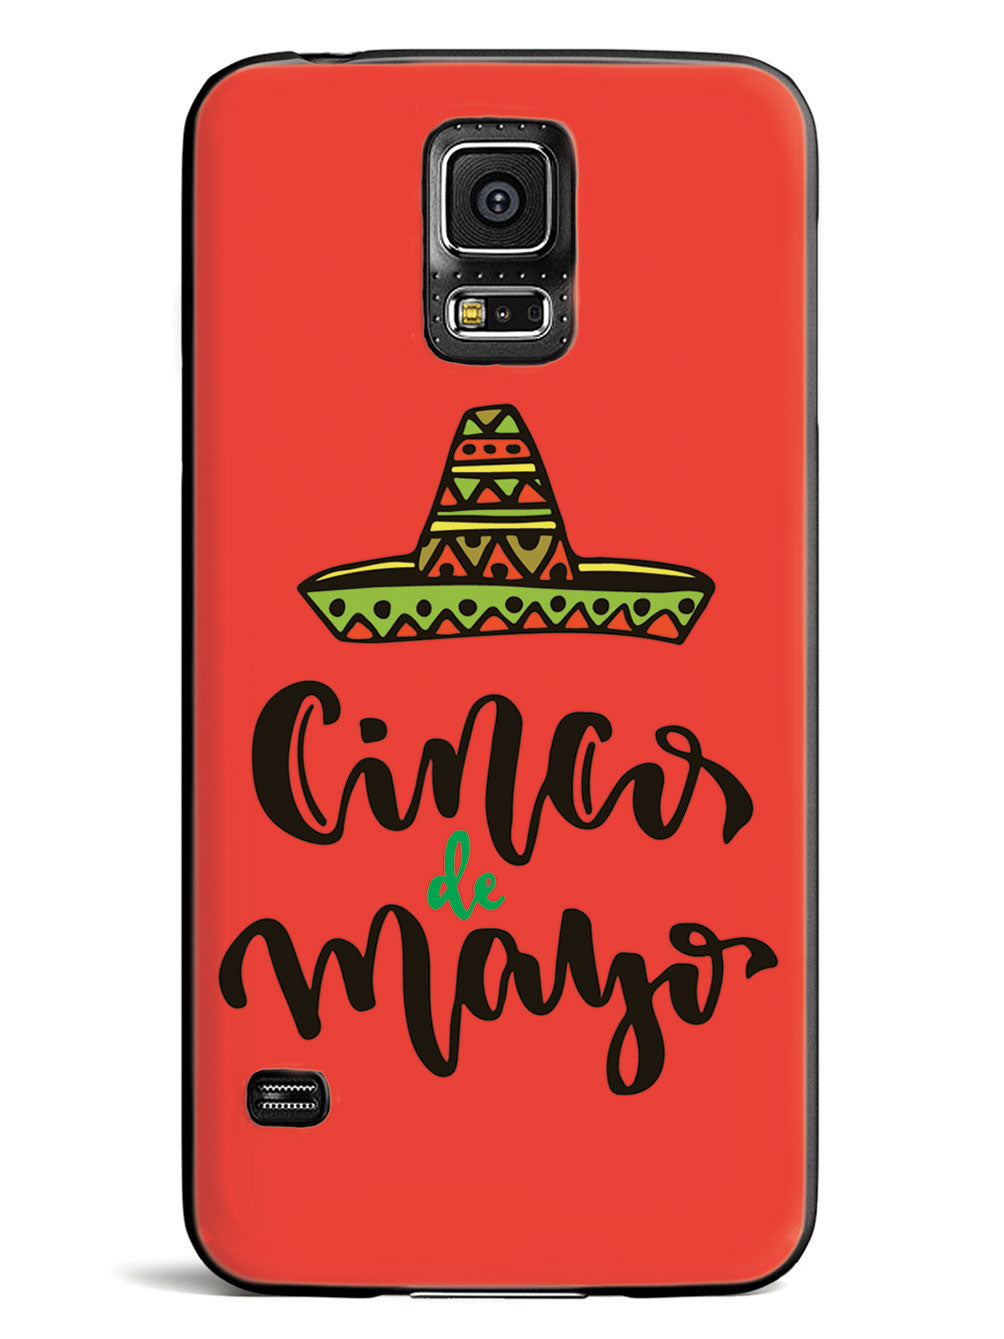 Cinco de Mayo - Red - Black Case